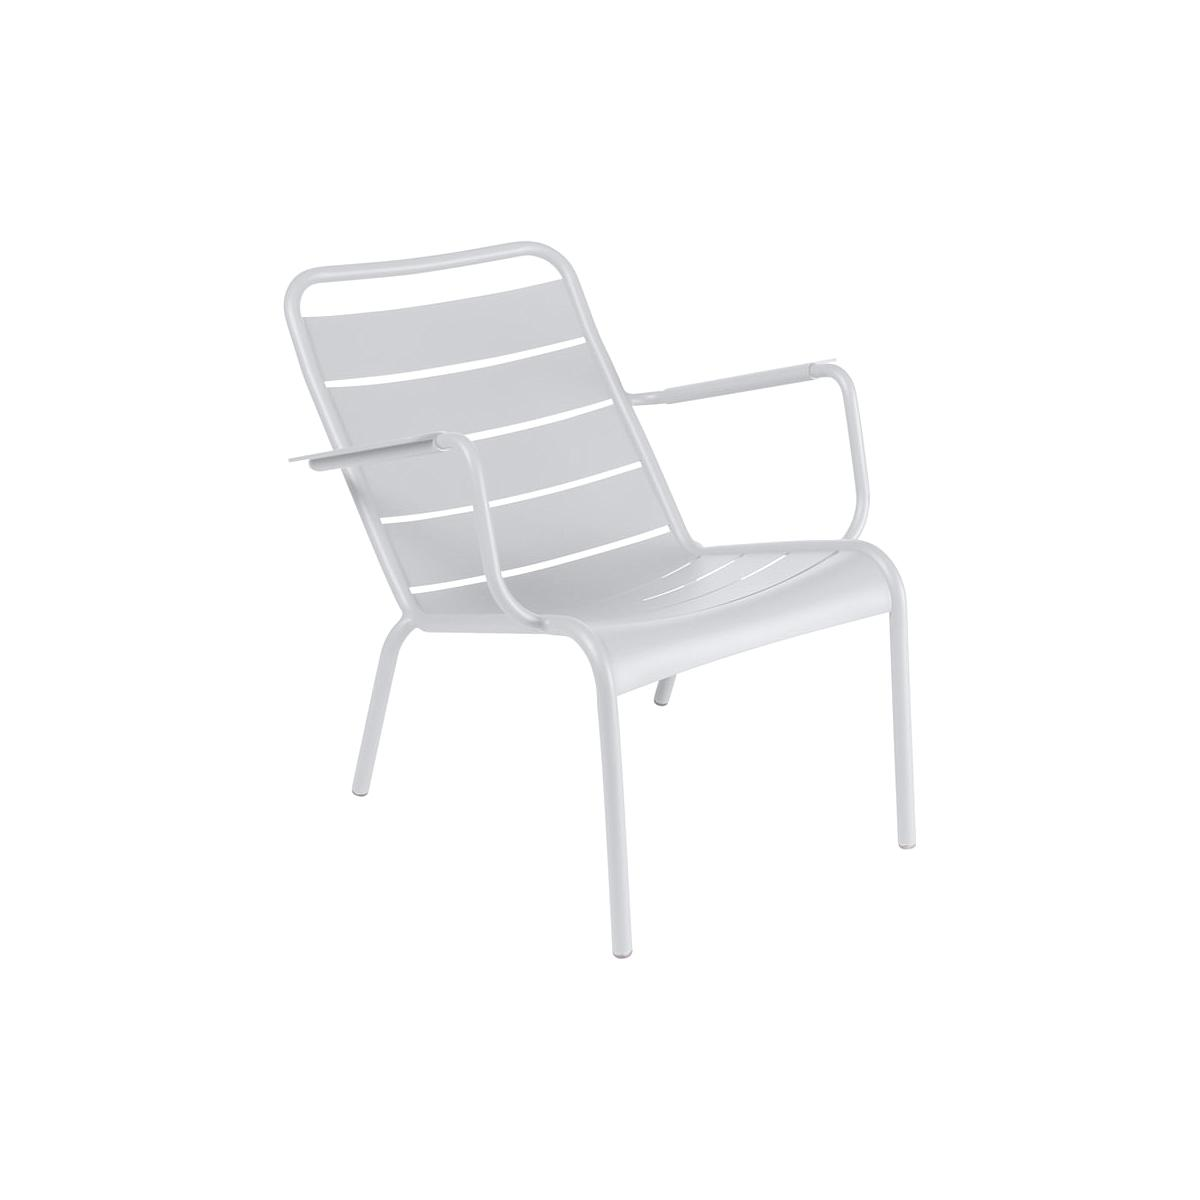 LUXEMBOURG  by Fermob Fauteuil bas blanc coton